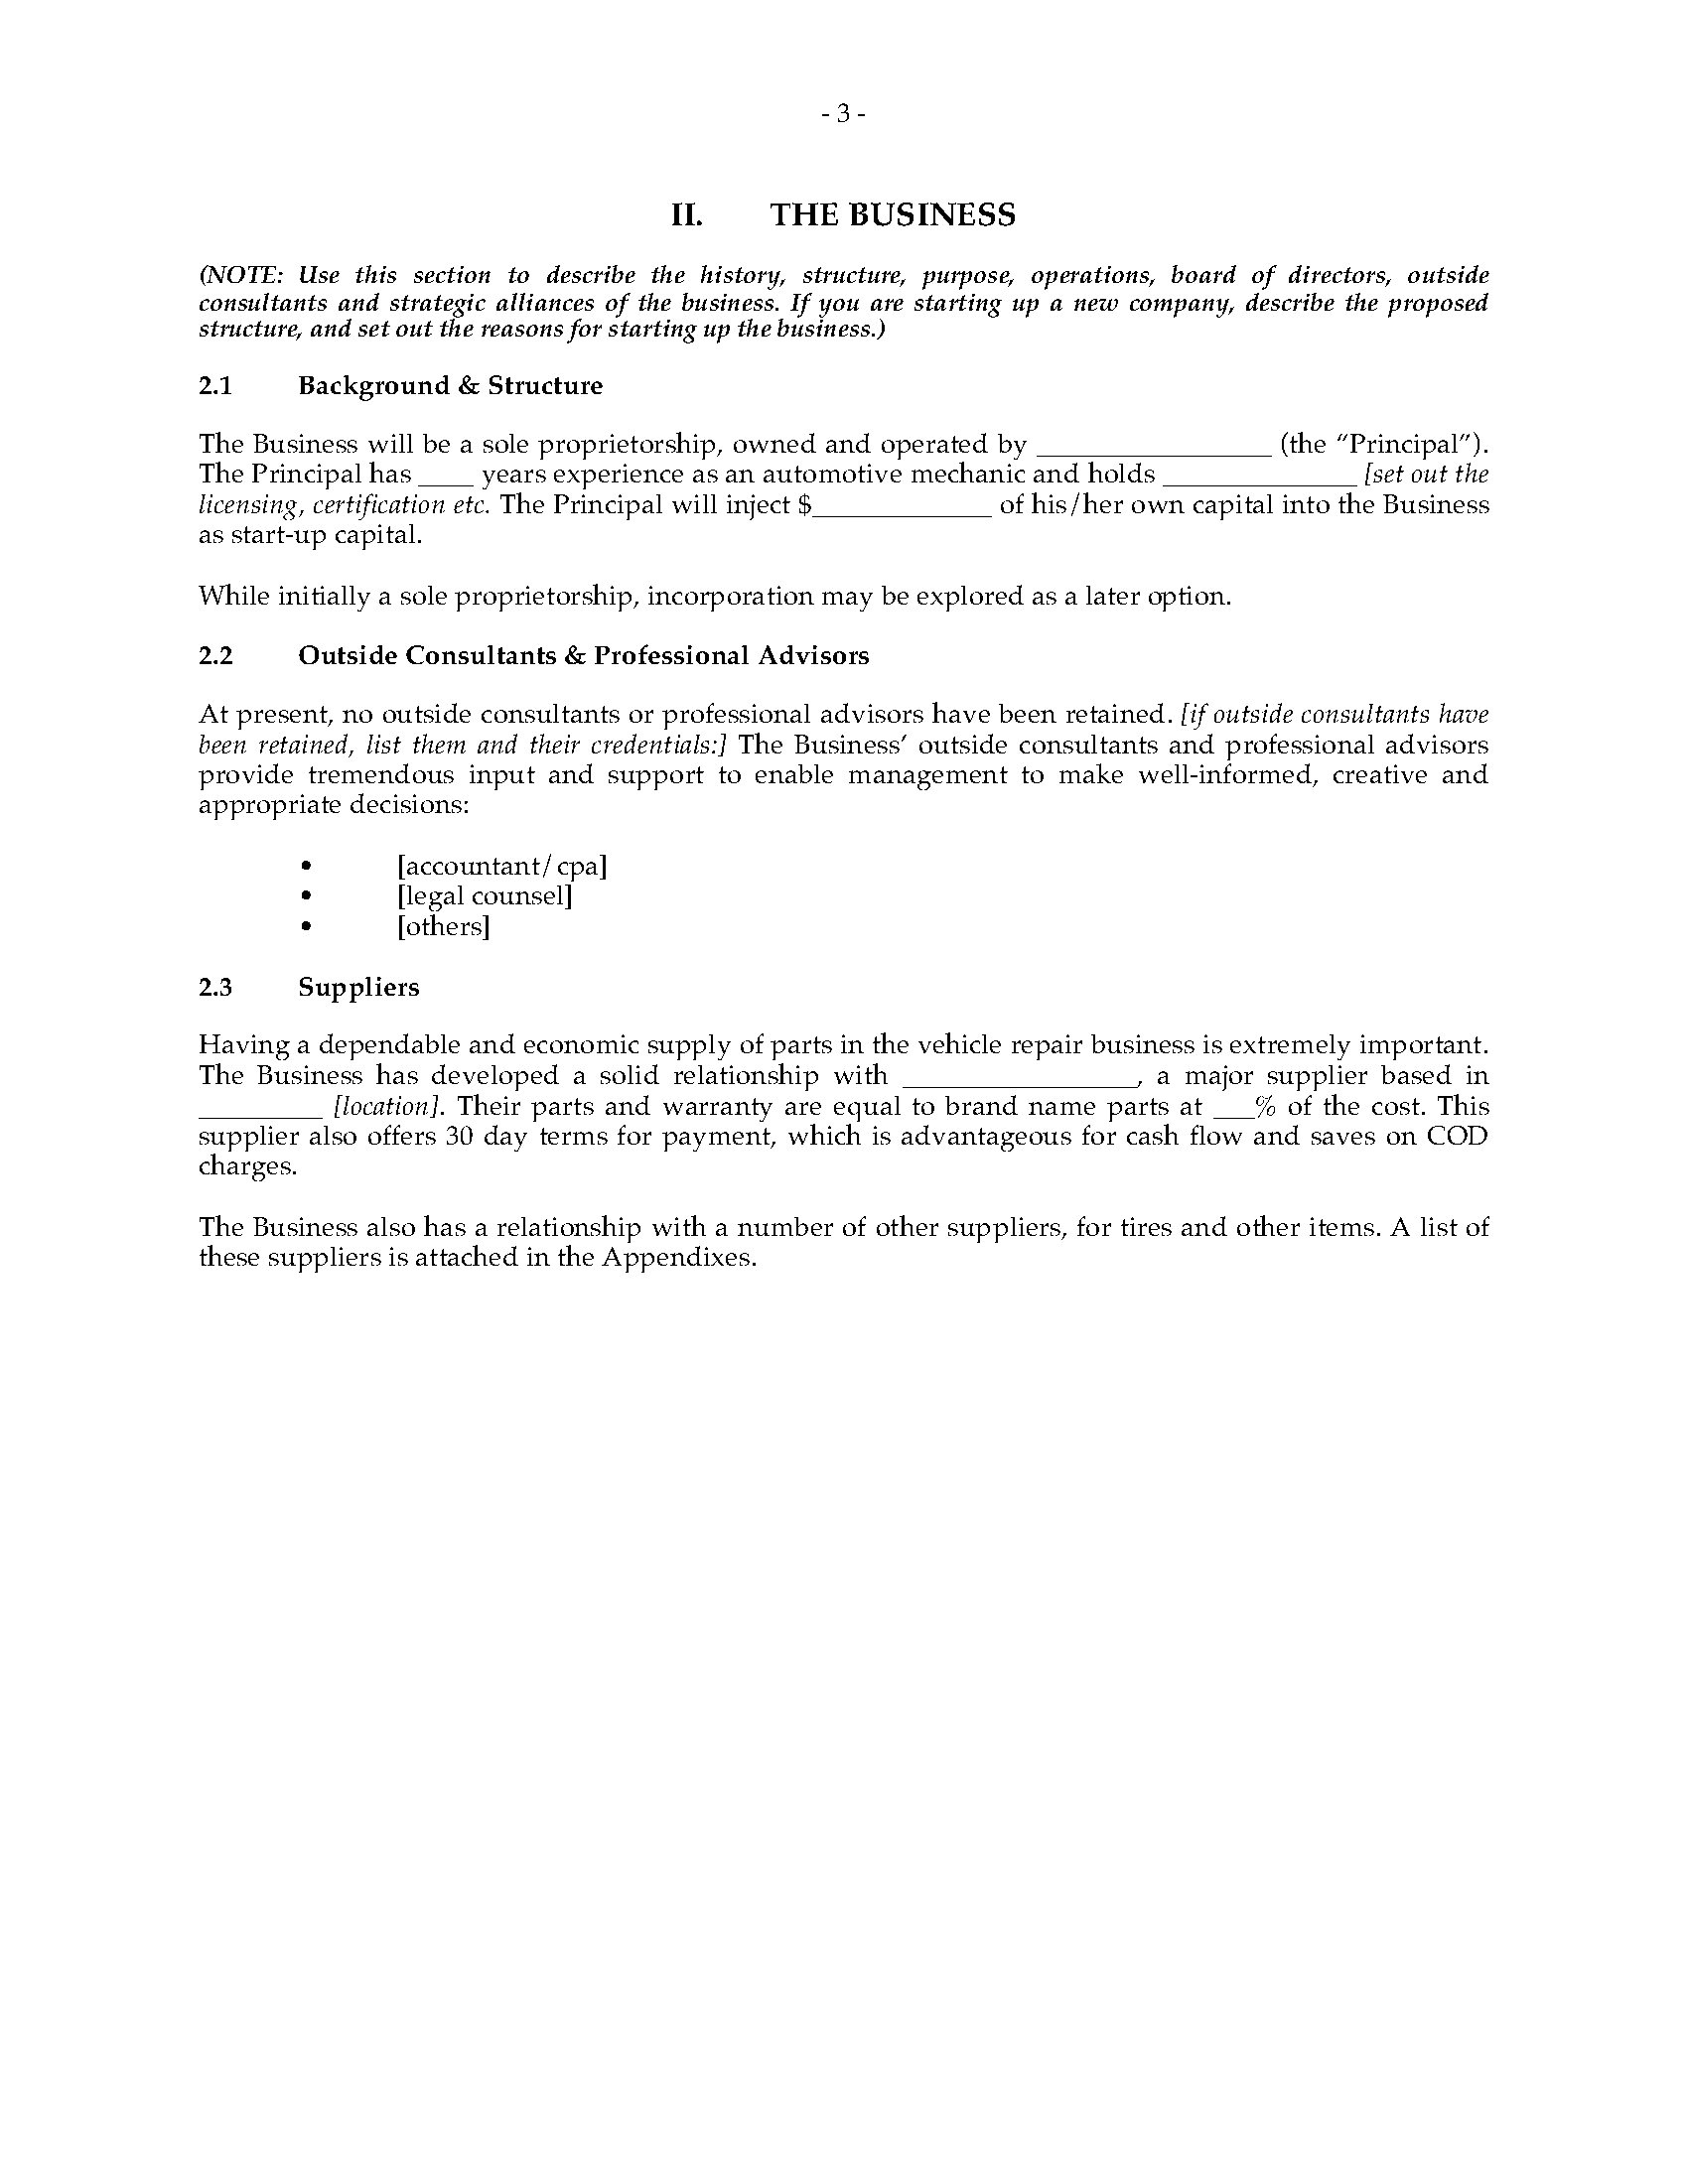 Business Plan Template for Auto Repair Shop Garage and Auto Repair Shop Business Plan Legal forms